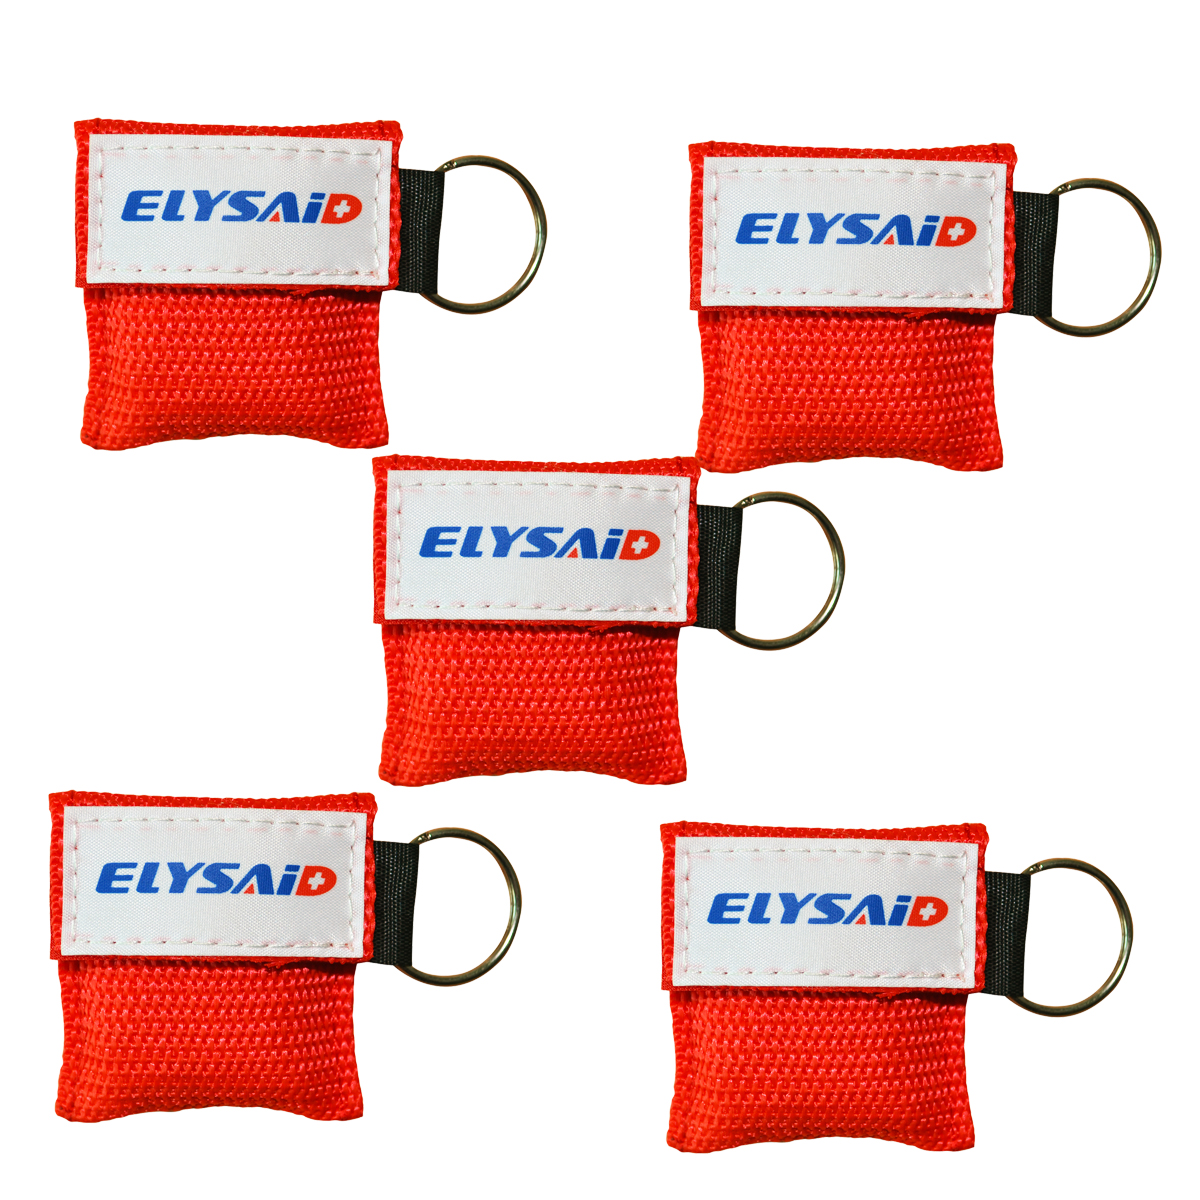 Wholesale 500Pcs/Pack New Face Shield CPR Mask Emergency Rescue One-way Valve Mouth Breathing Resuscitator With keychain KeyRing 180pcs pack cpr mask cpr face shield with one way valve keychain keyring mask for emergency rescue first aid survival kits